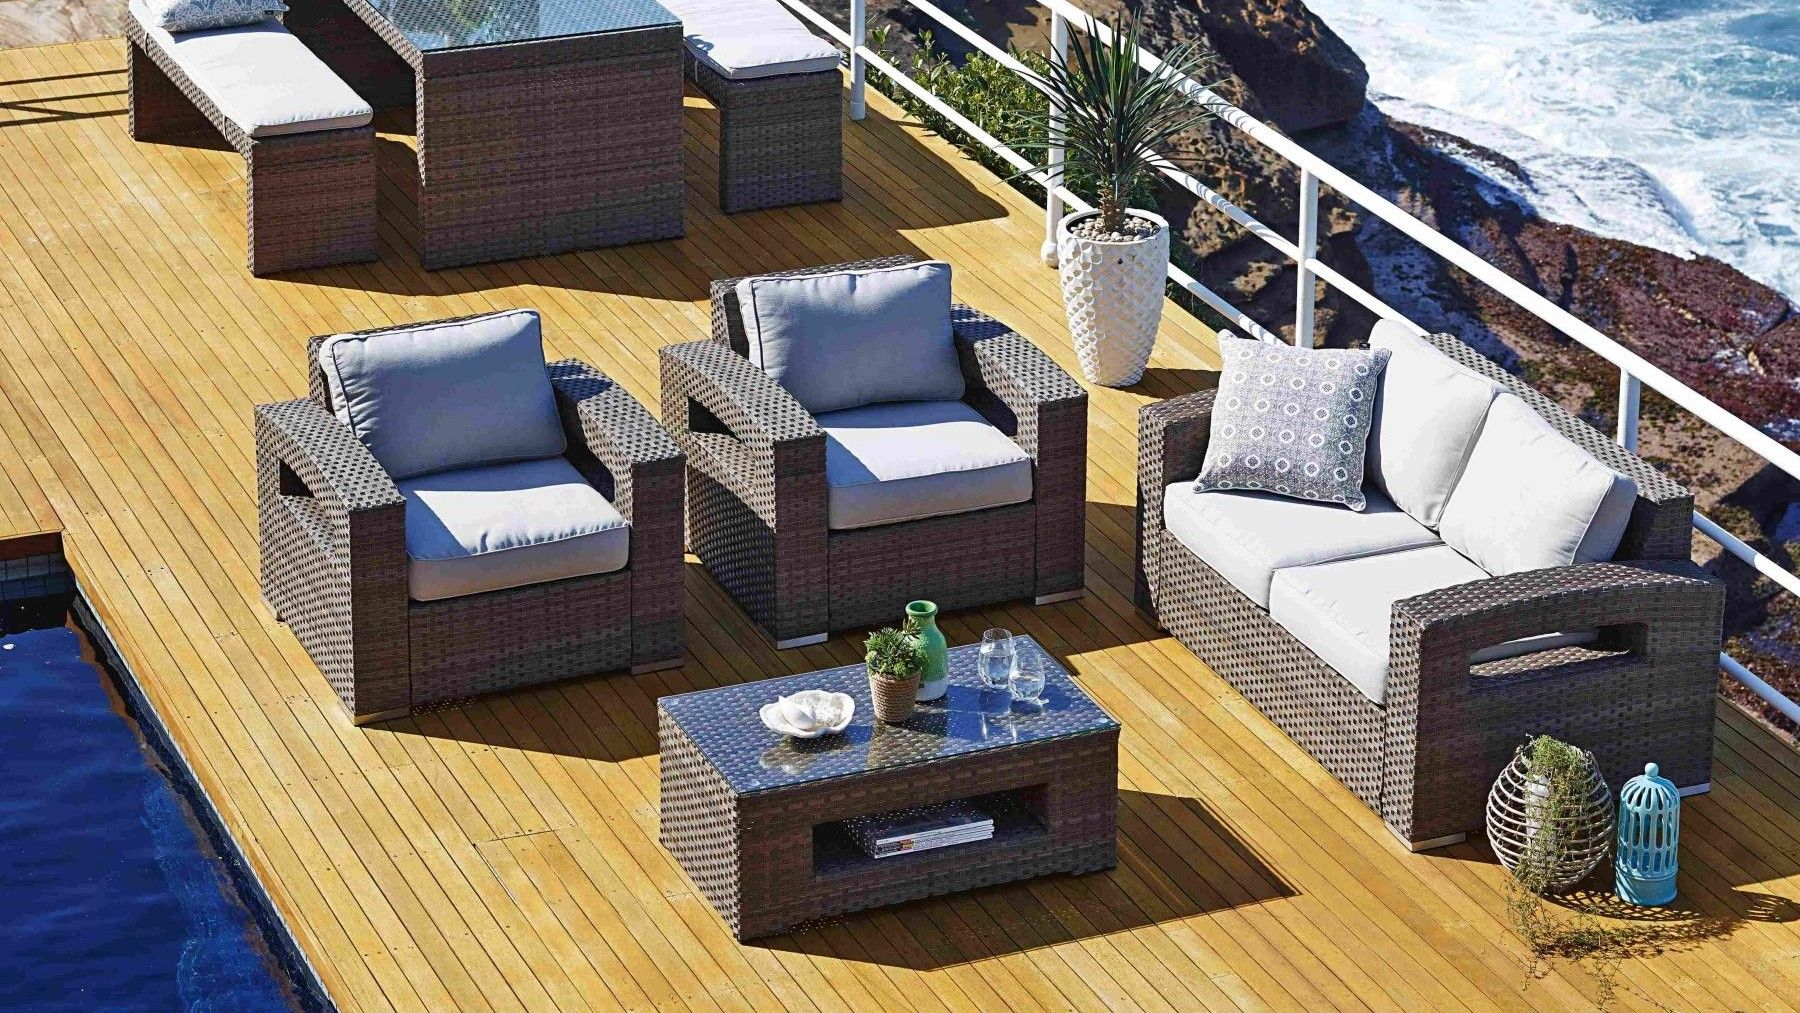 Harvey Norman: Hampton 4 Piece Outdoor Lounge Suite 2 x armchairs 900x850, sofa 1520x850